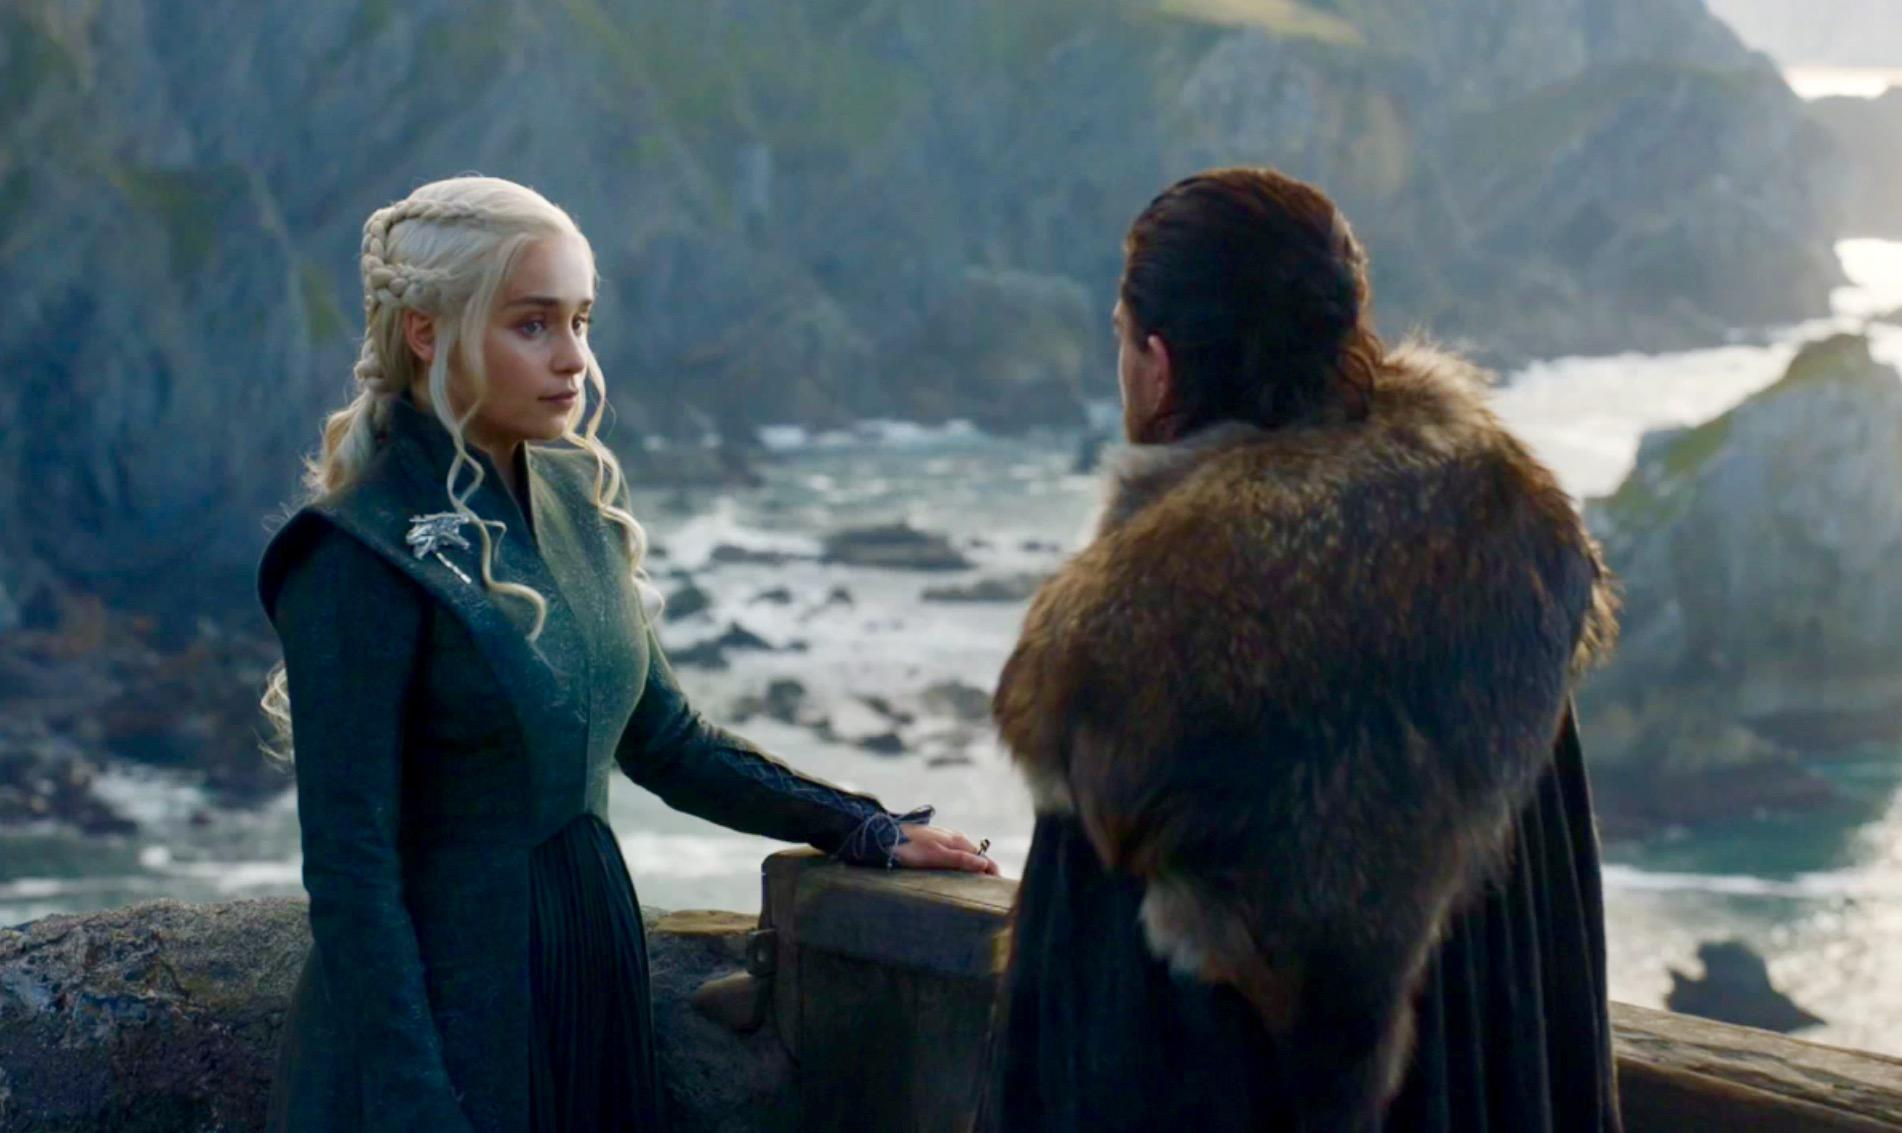 Game of Thrones: Is Jon Snow and Daenerys's relationship